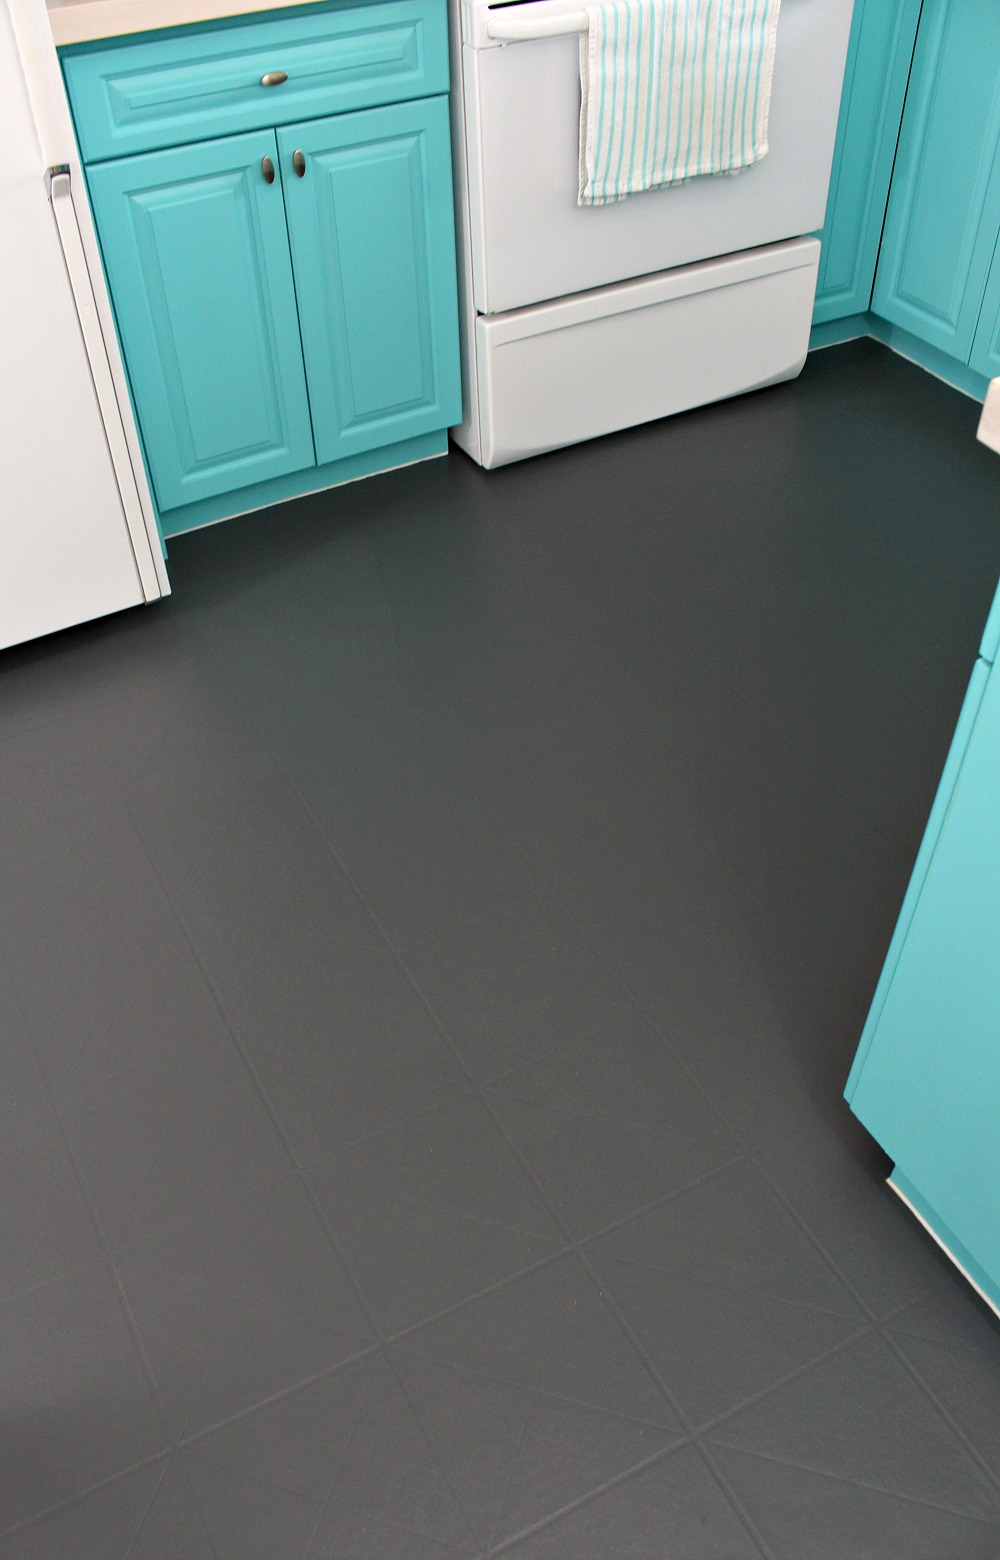 Kitchen Floorings How To Paint A Vinyl Floor Diy Painted Floors Dans Le Lakehouse